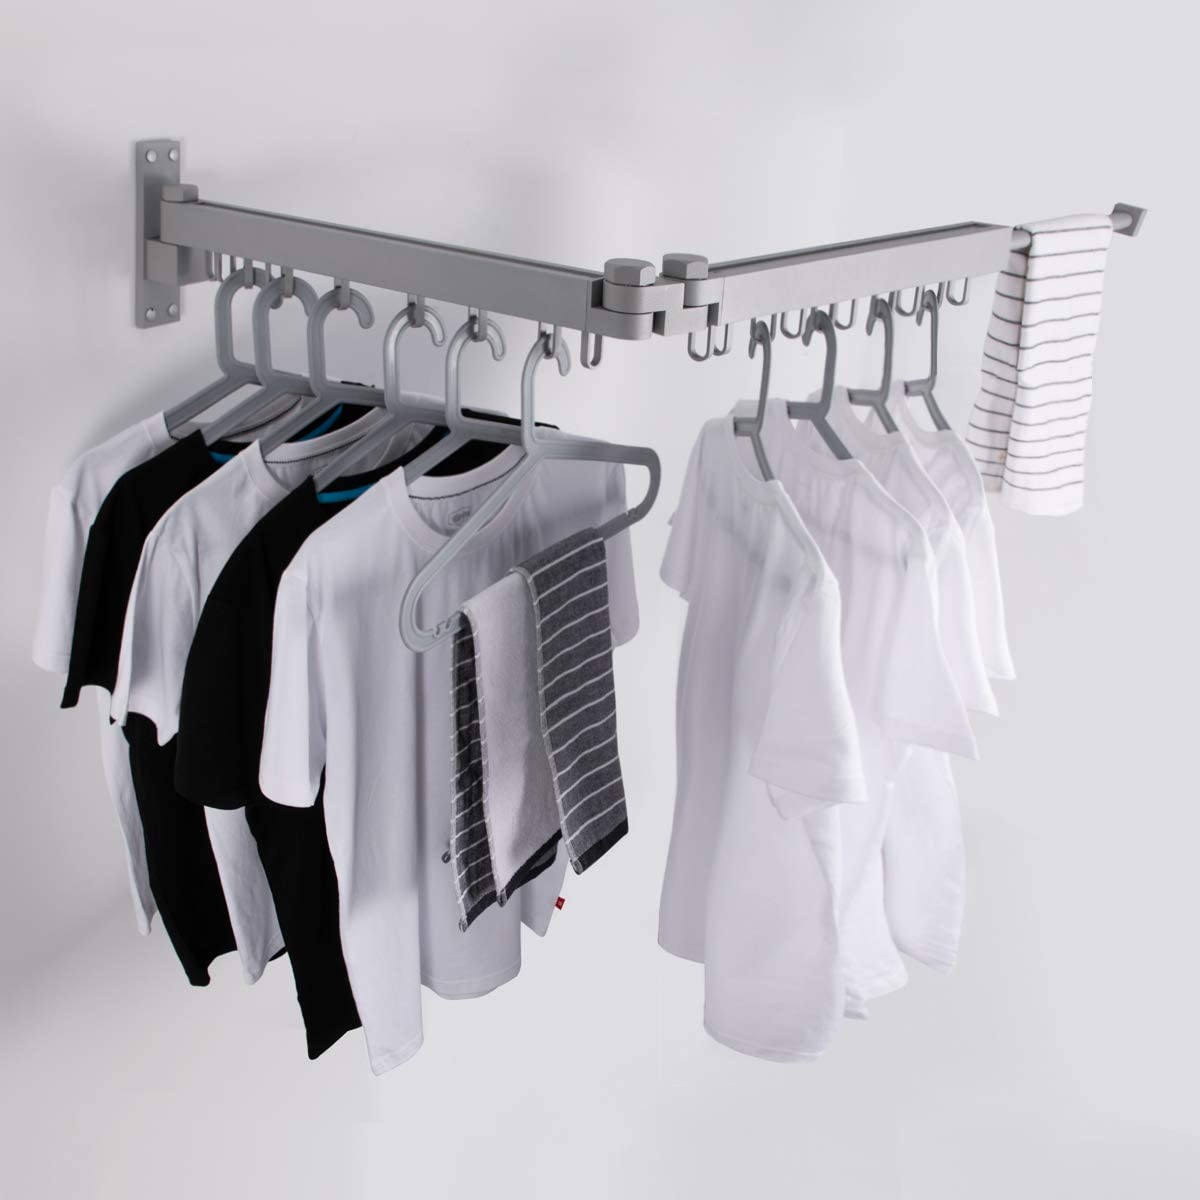 BENOSS Wall Mounted Clothes Drying Rack, Collapsible and Retractable Laundry Garment Hanger for Daily Clothes, Space Saver Hangers, Easy to Install, for Balcony, Laundry, Bathroom and Bedroom (Silver)